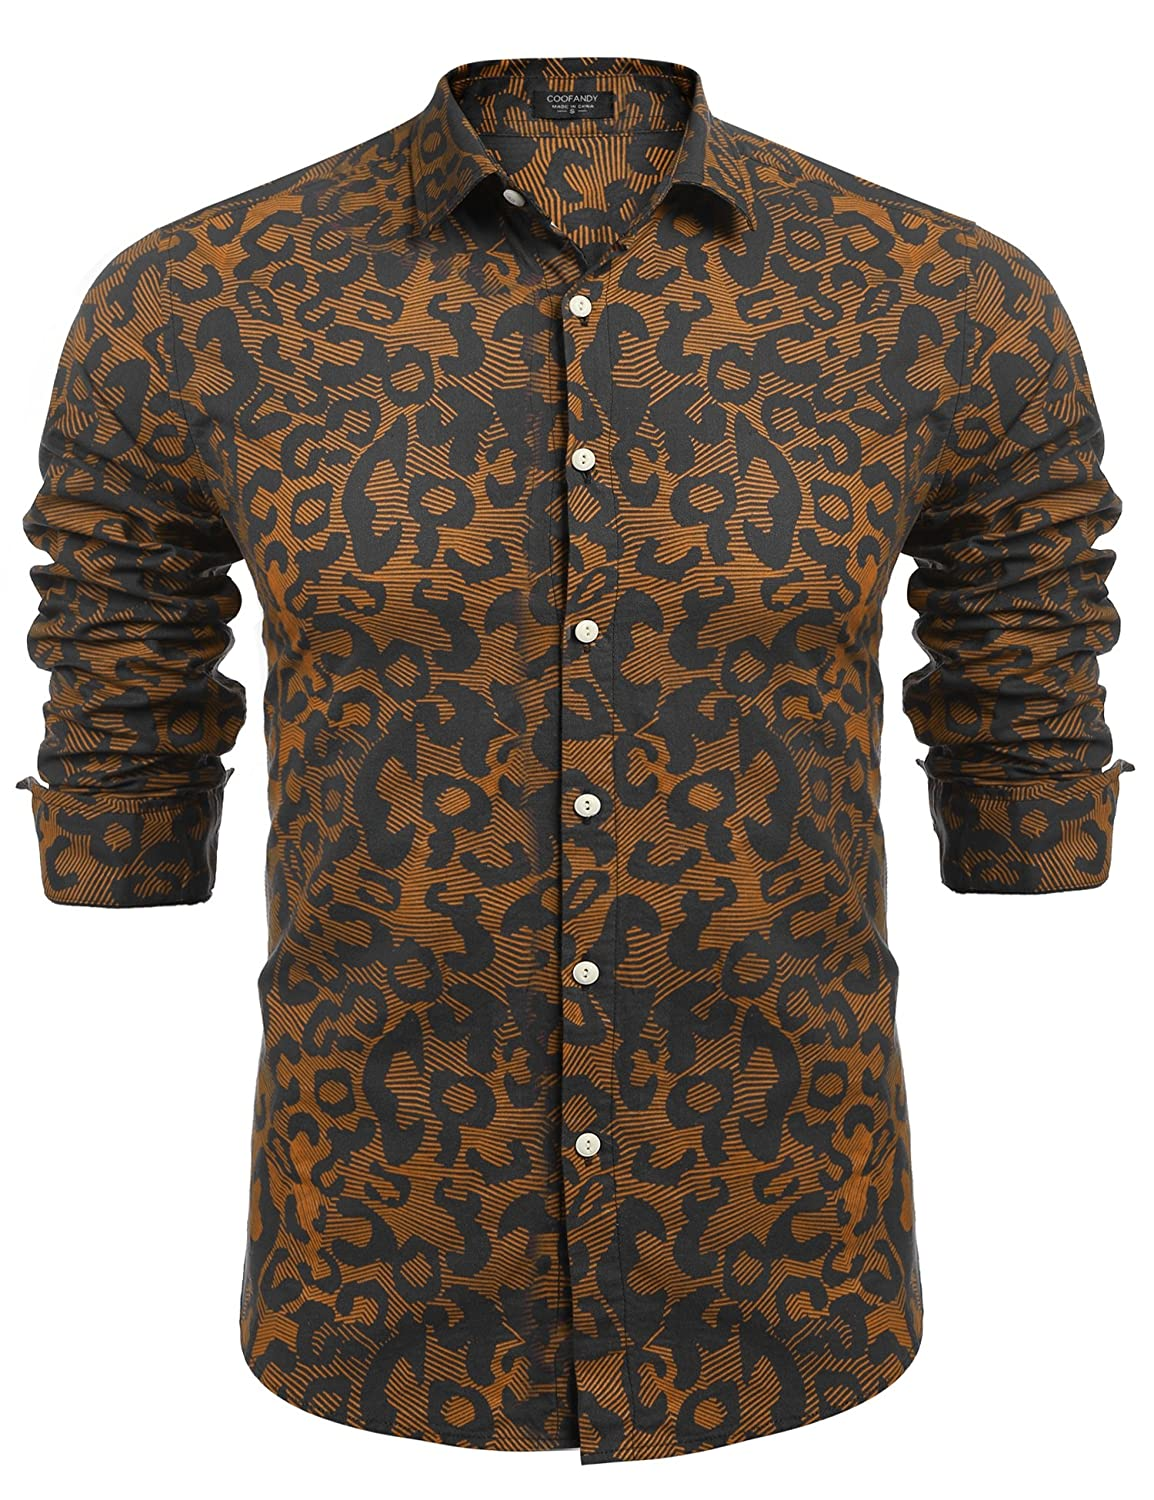 Coofandy Men's Fashion Print Casual Long Sleeve Button Down Shirt